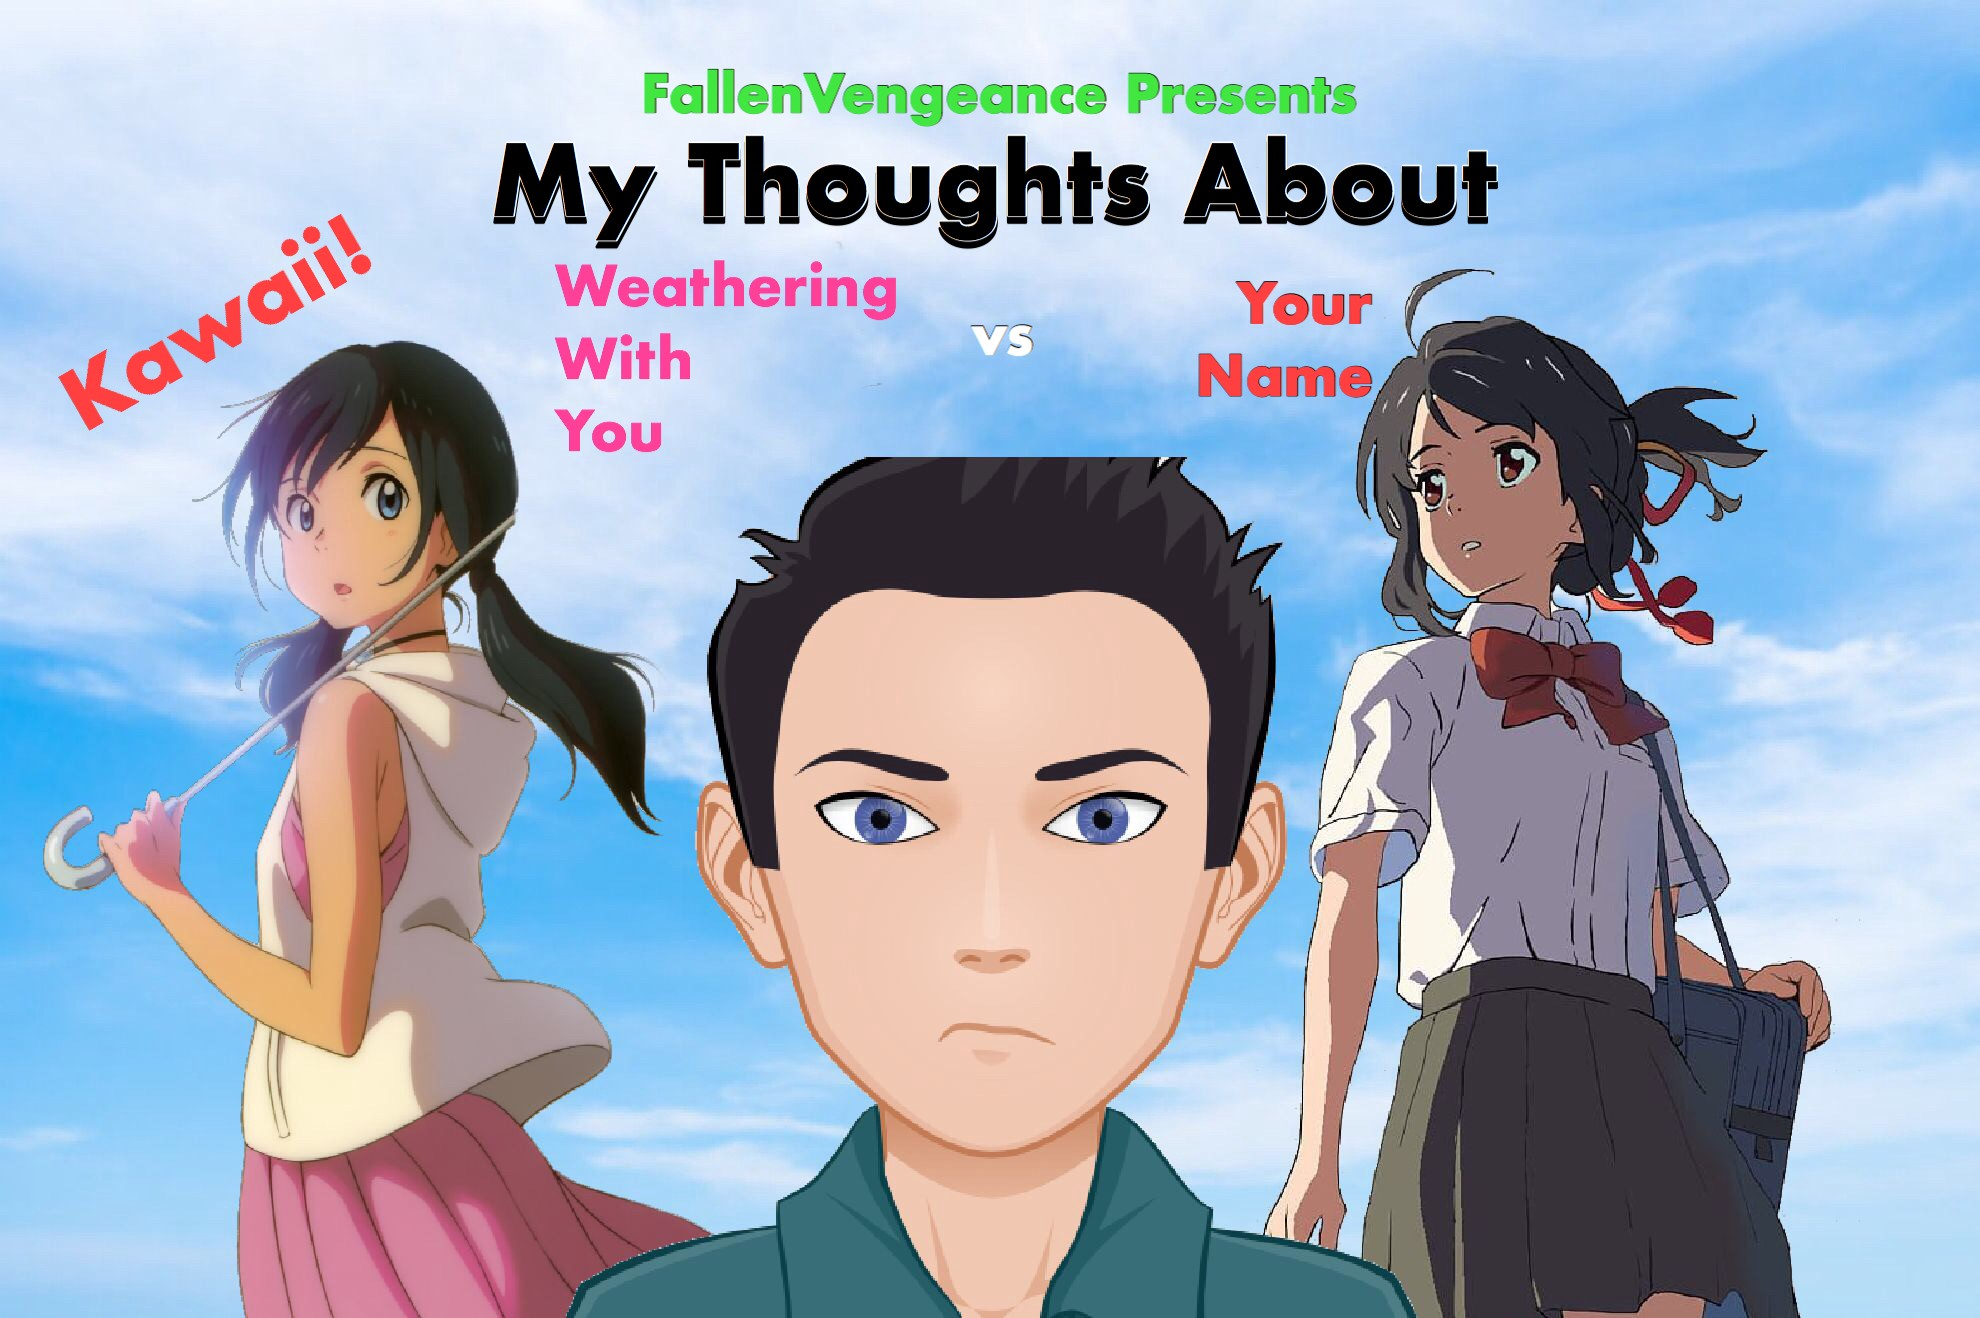 My Thoughts About Your Name Vs Weathering With You Episode 5 By Fallenvengeance My Thoughts About Medium